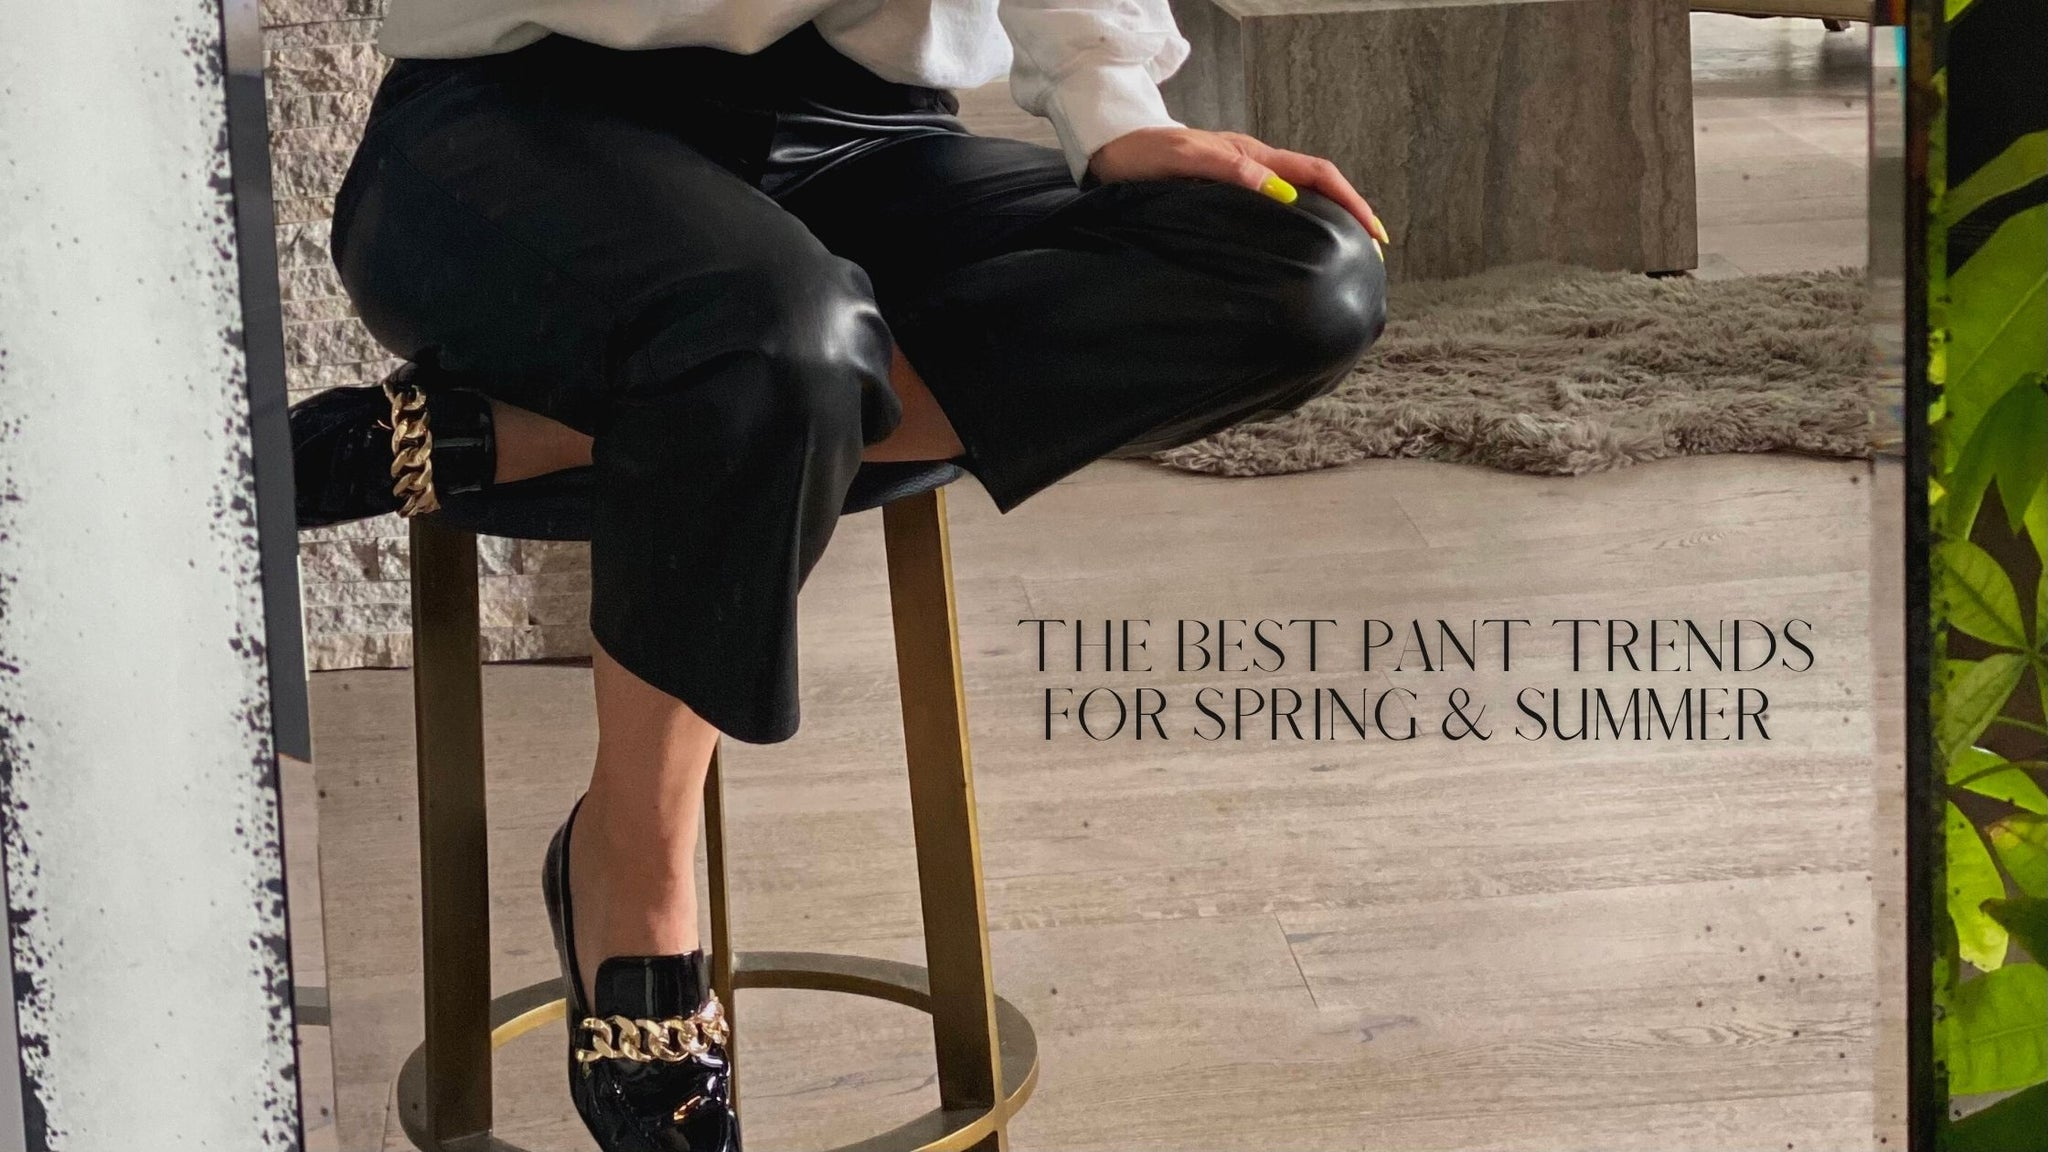 THE BIGGEST PANT TRENDS FOR SPRING AND SUMMER.